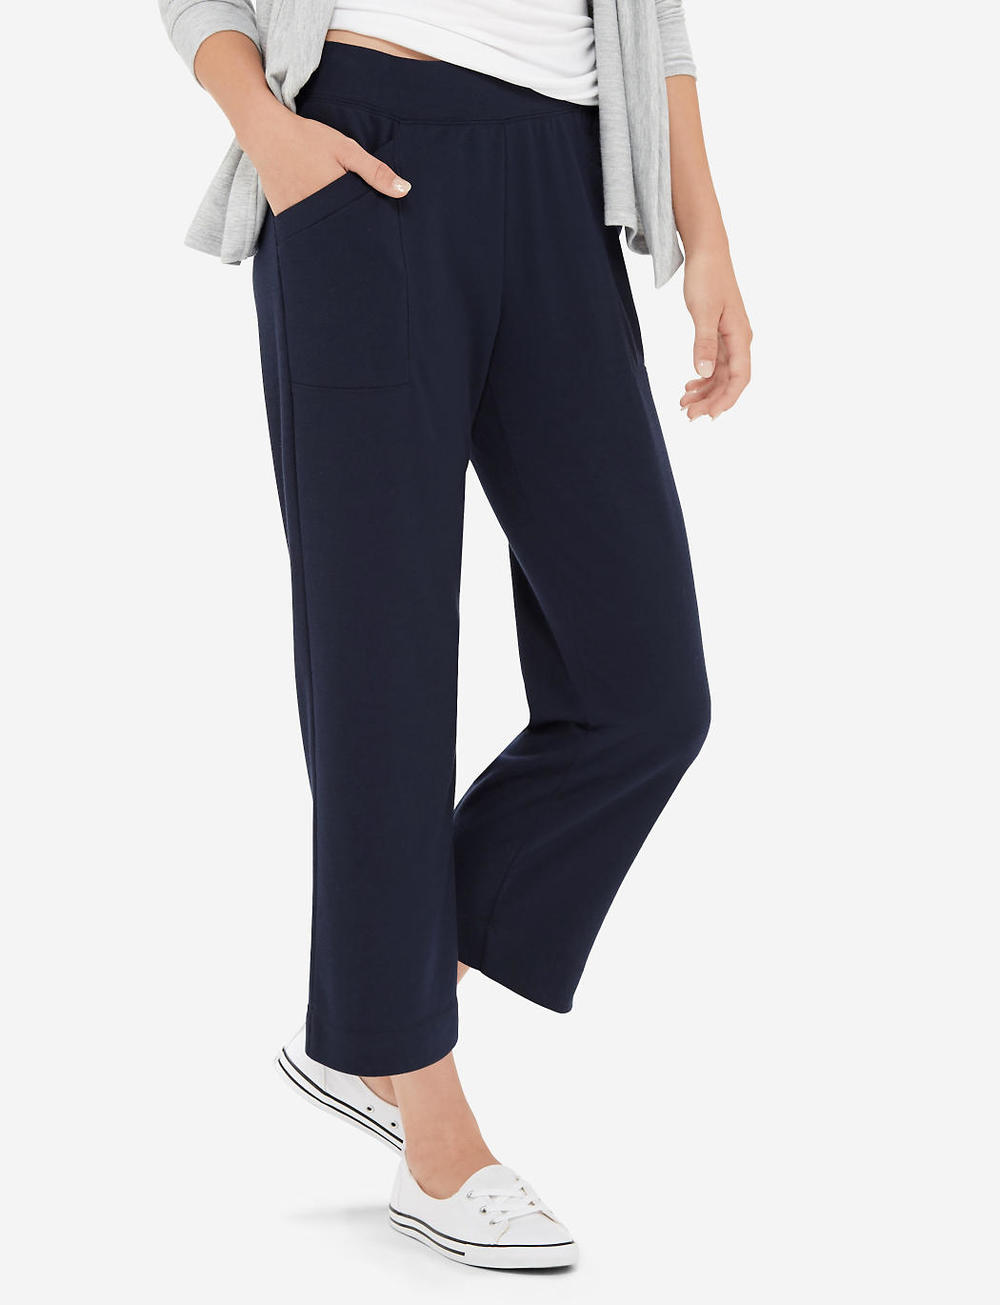 Cropped Lounge Pants. Available in navy, grey, taupe. The Limited. Was: $44 Now: $31.